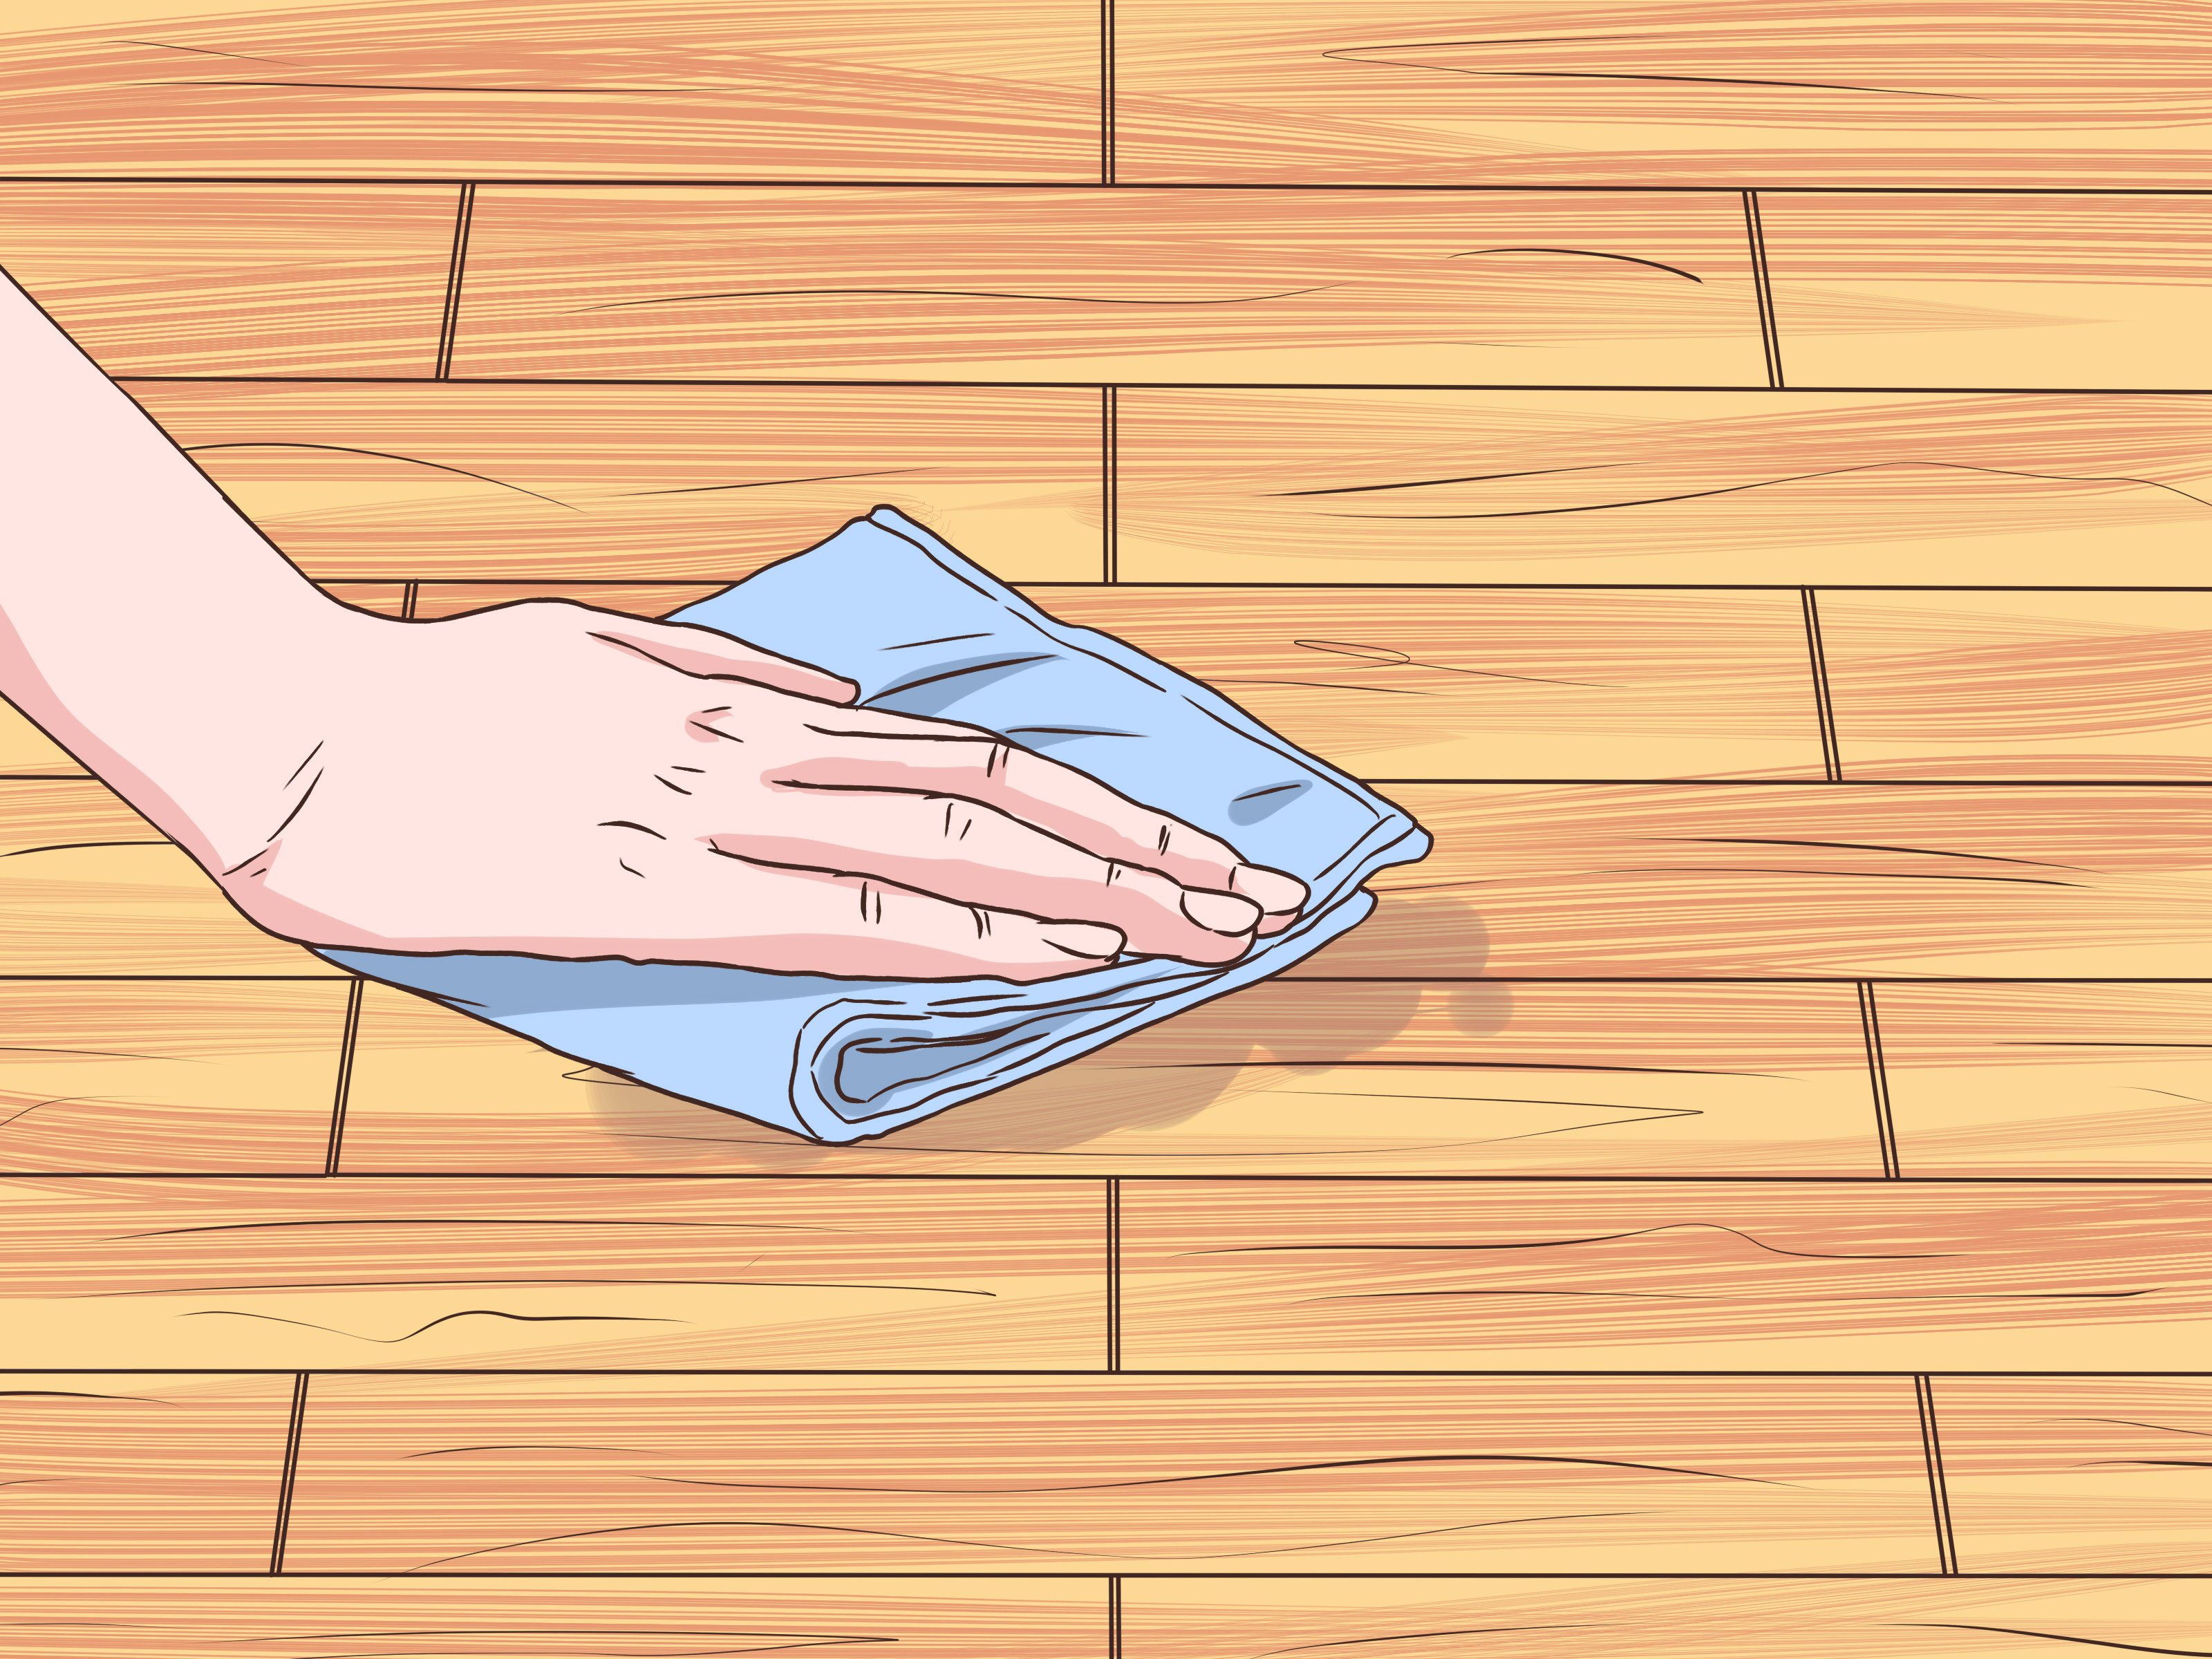 hardwood flooring on sale near me of how to clean sticky hardwood floors 9 steps with pictures with clean sticky hardwood floors step 9